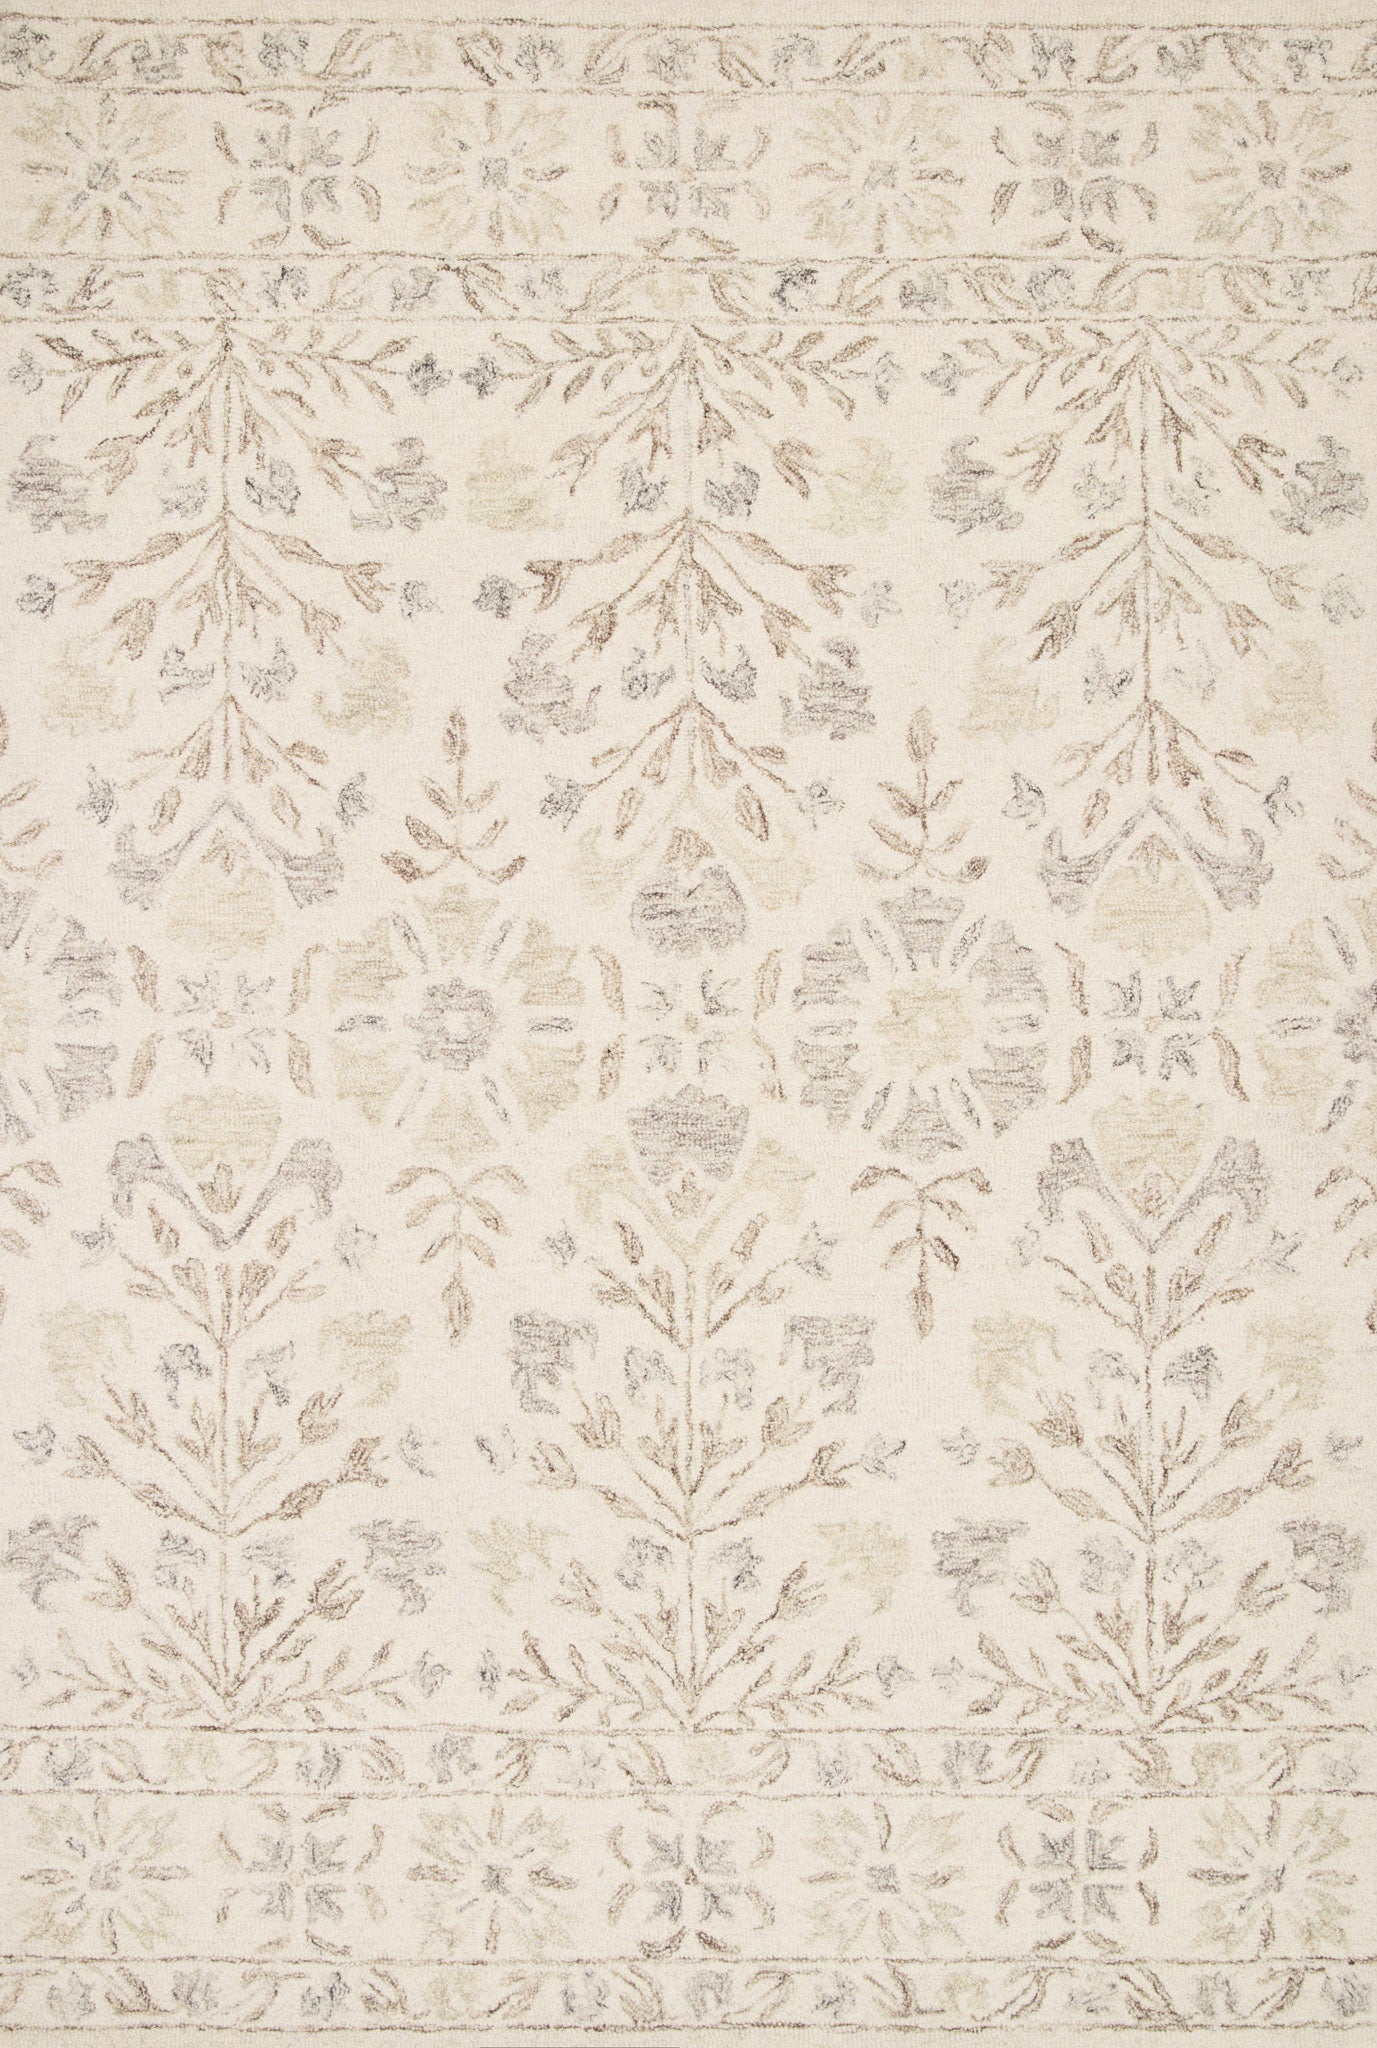 Loloi Norabel NOR-02 Ivory/Neutral Area Rug main image